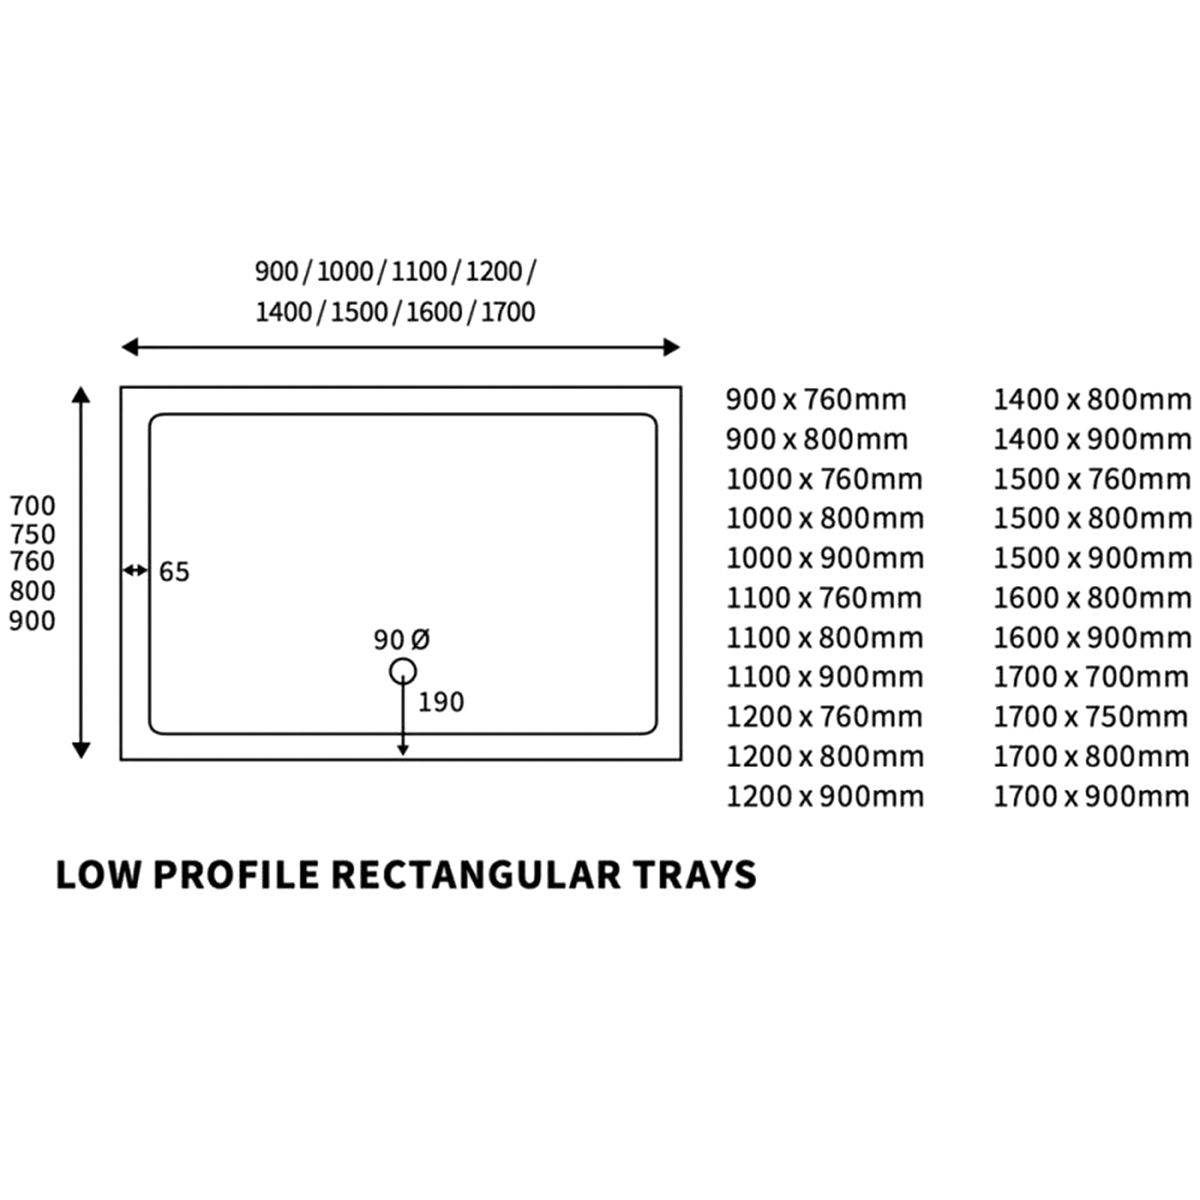 Bathrooms To Love Reflex Rectangular Low Profile Shower Tray with Waste 900mm x 800mm Line Drawing